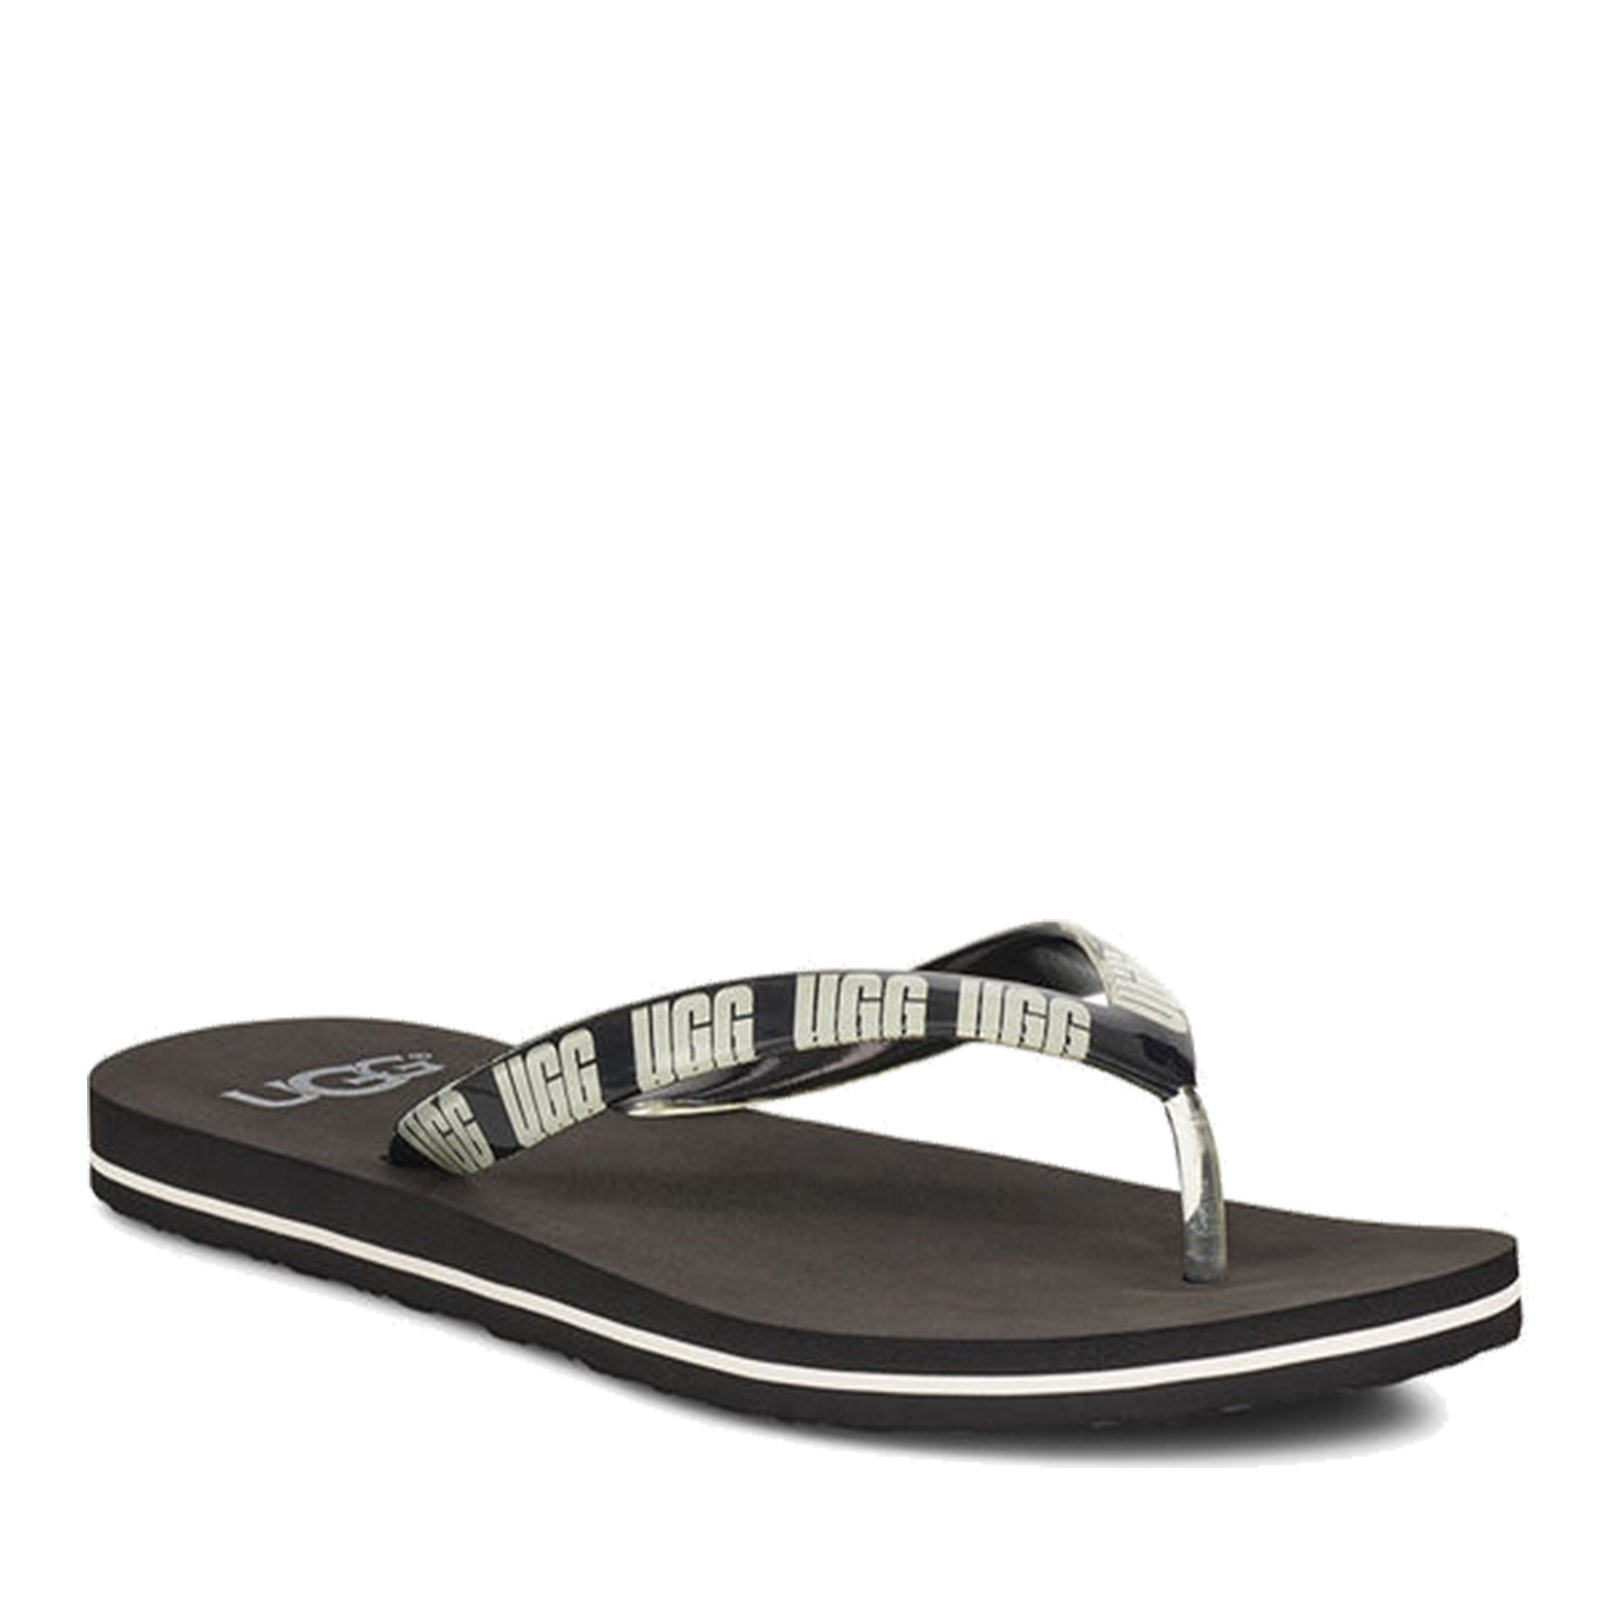 4ac4401f1 Home; Women's Ugg, Simi Graphic Sandals. Previous. default view ...